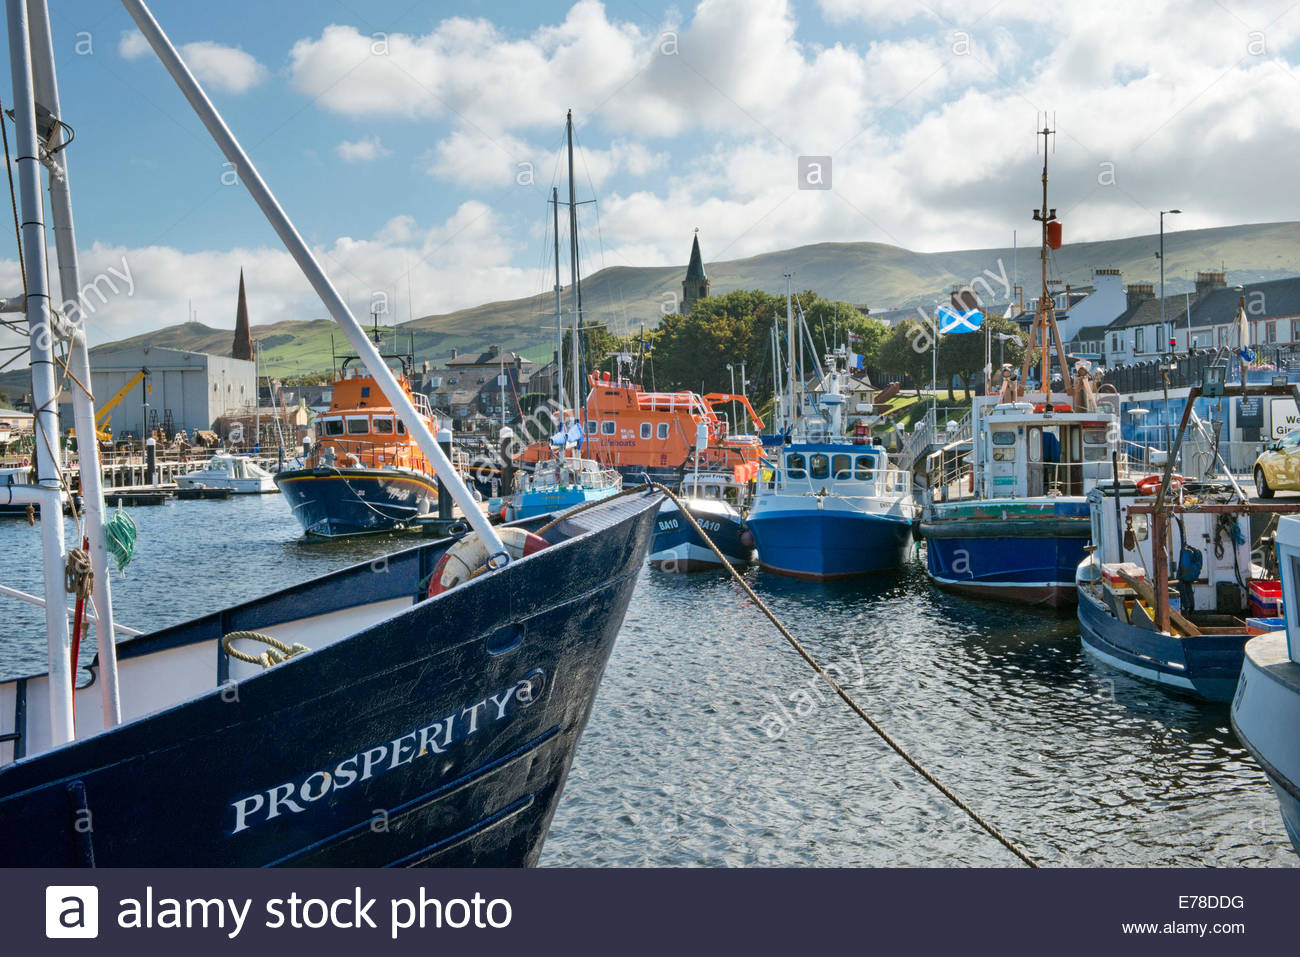 Fishing trawler 'Prosperity' tied up at Girvan Harbour, Ayrshire, Scotland with the Scottish Saltire flag - Stock Image